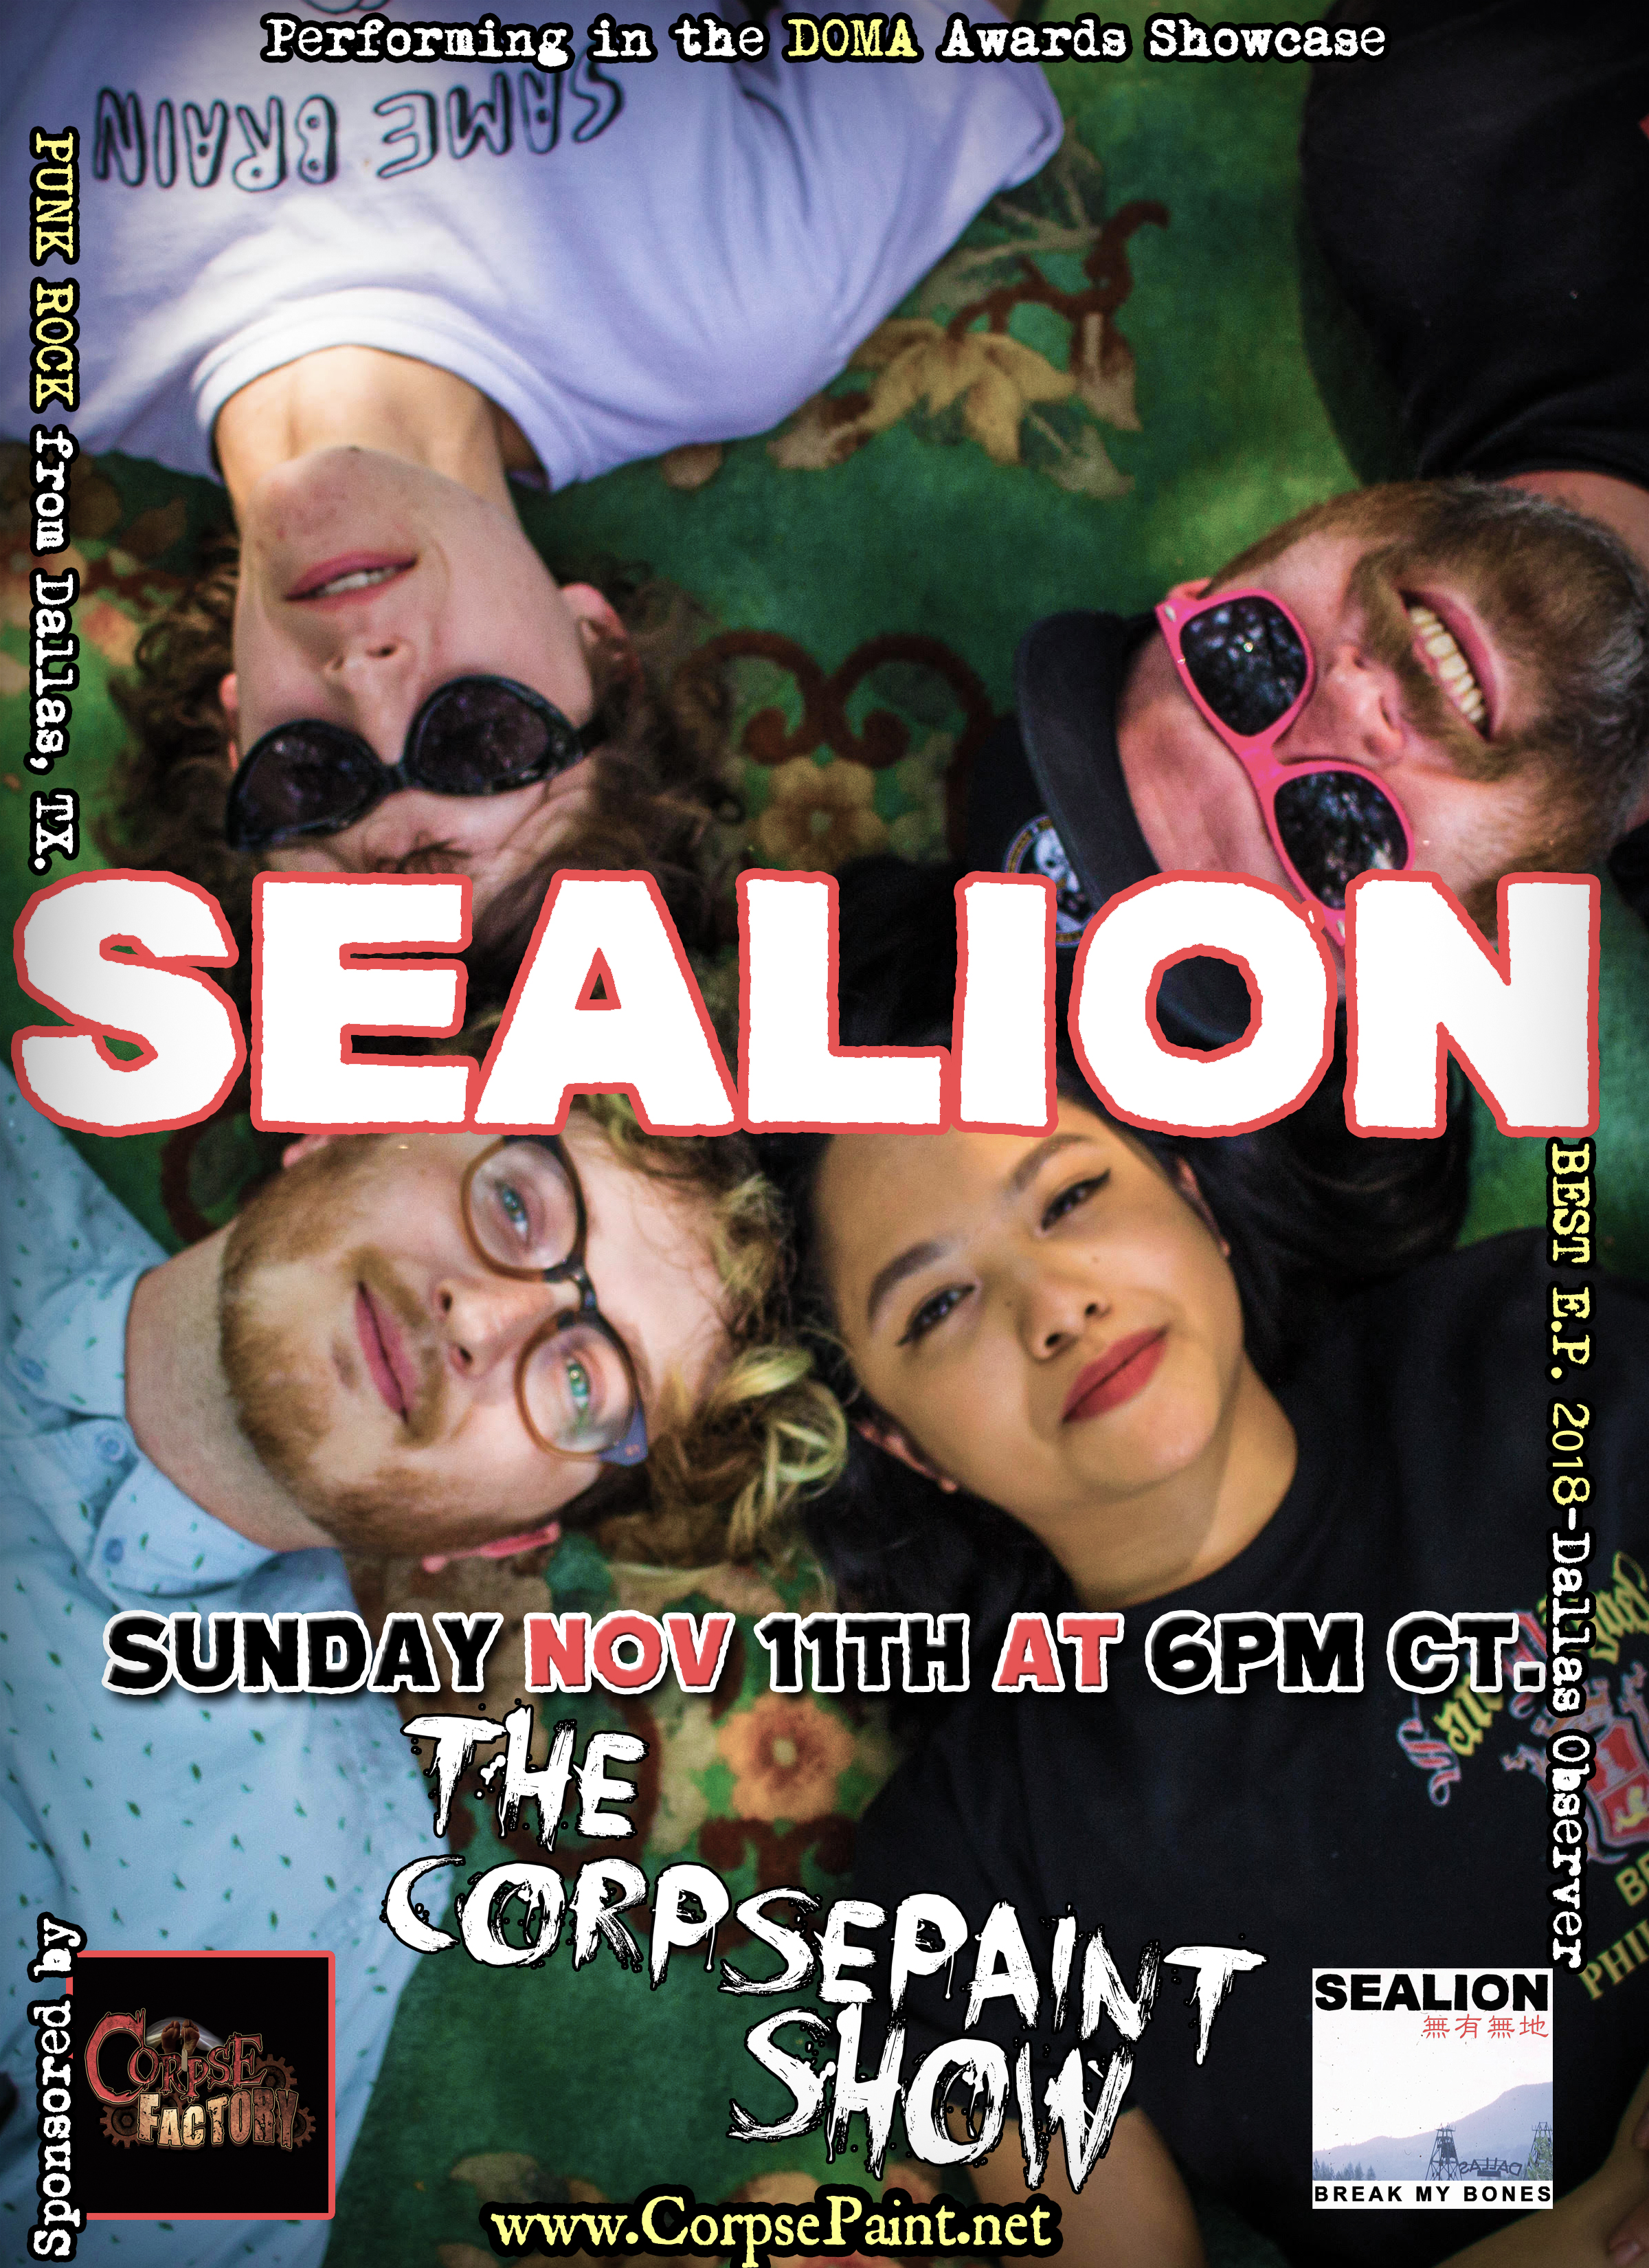 Nov 11th - Sealion